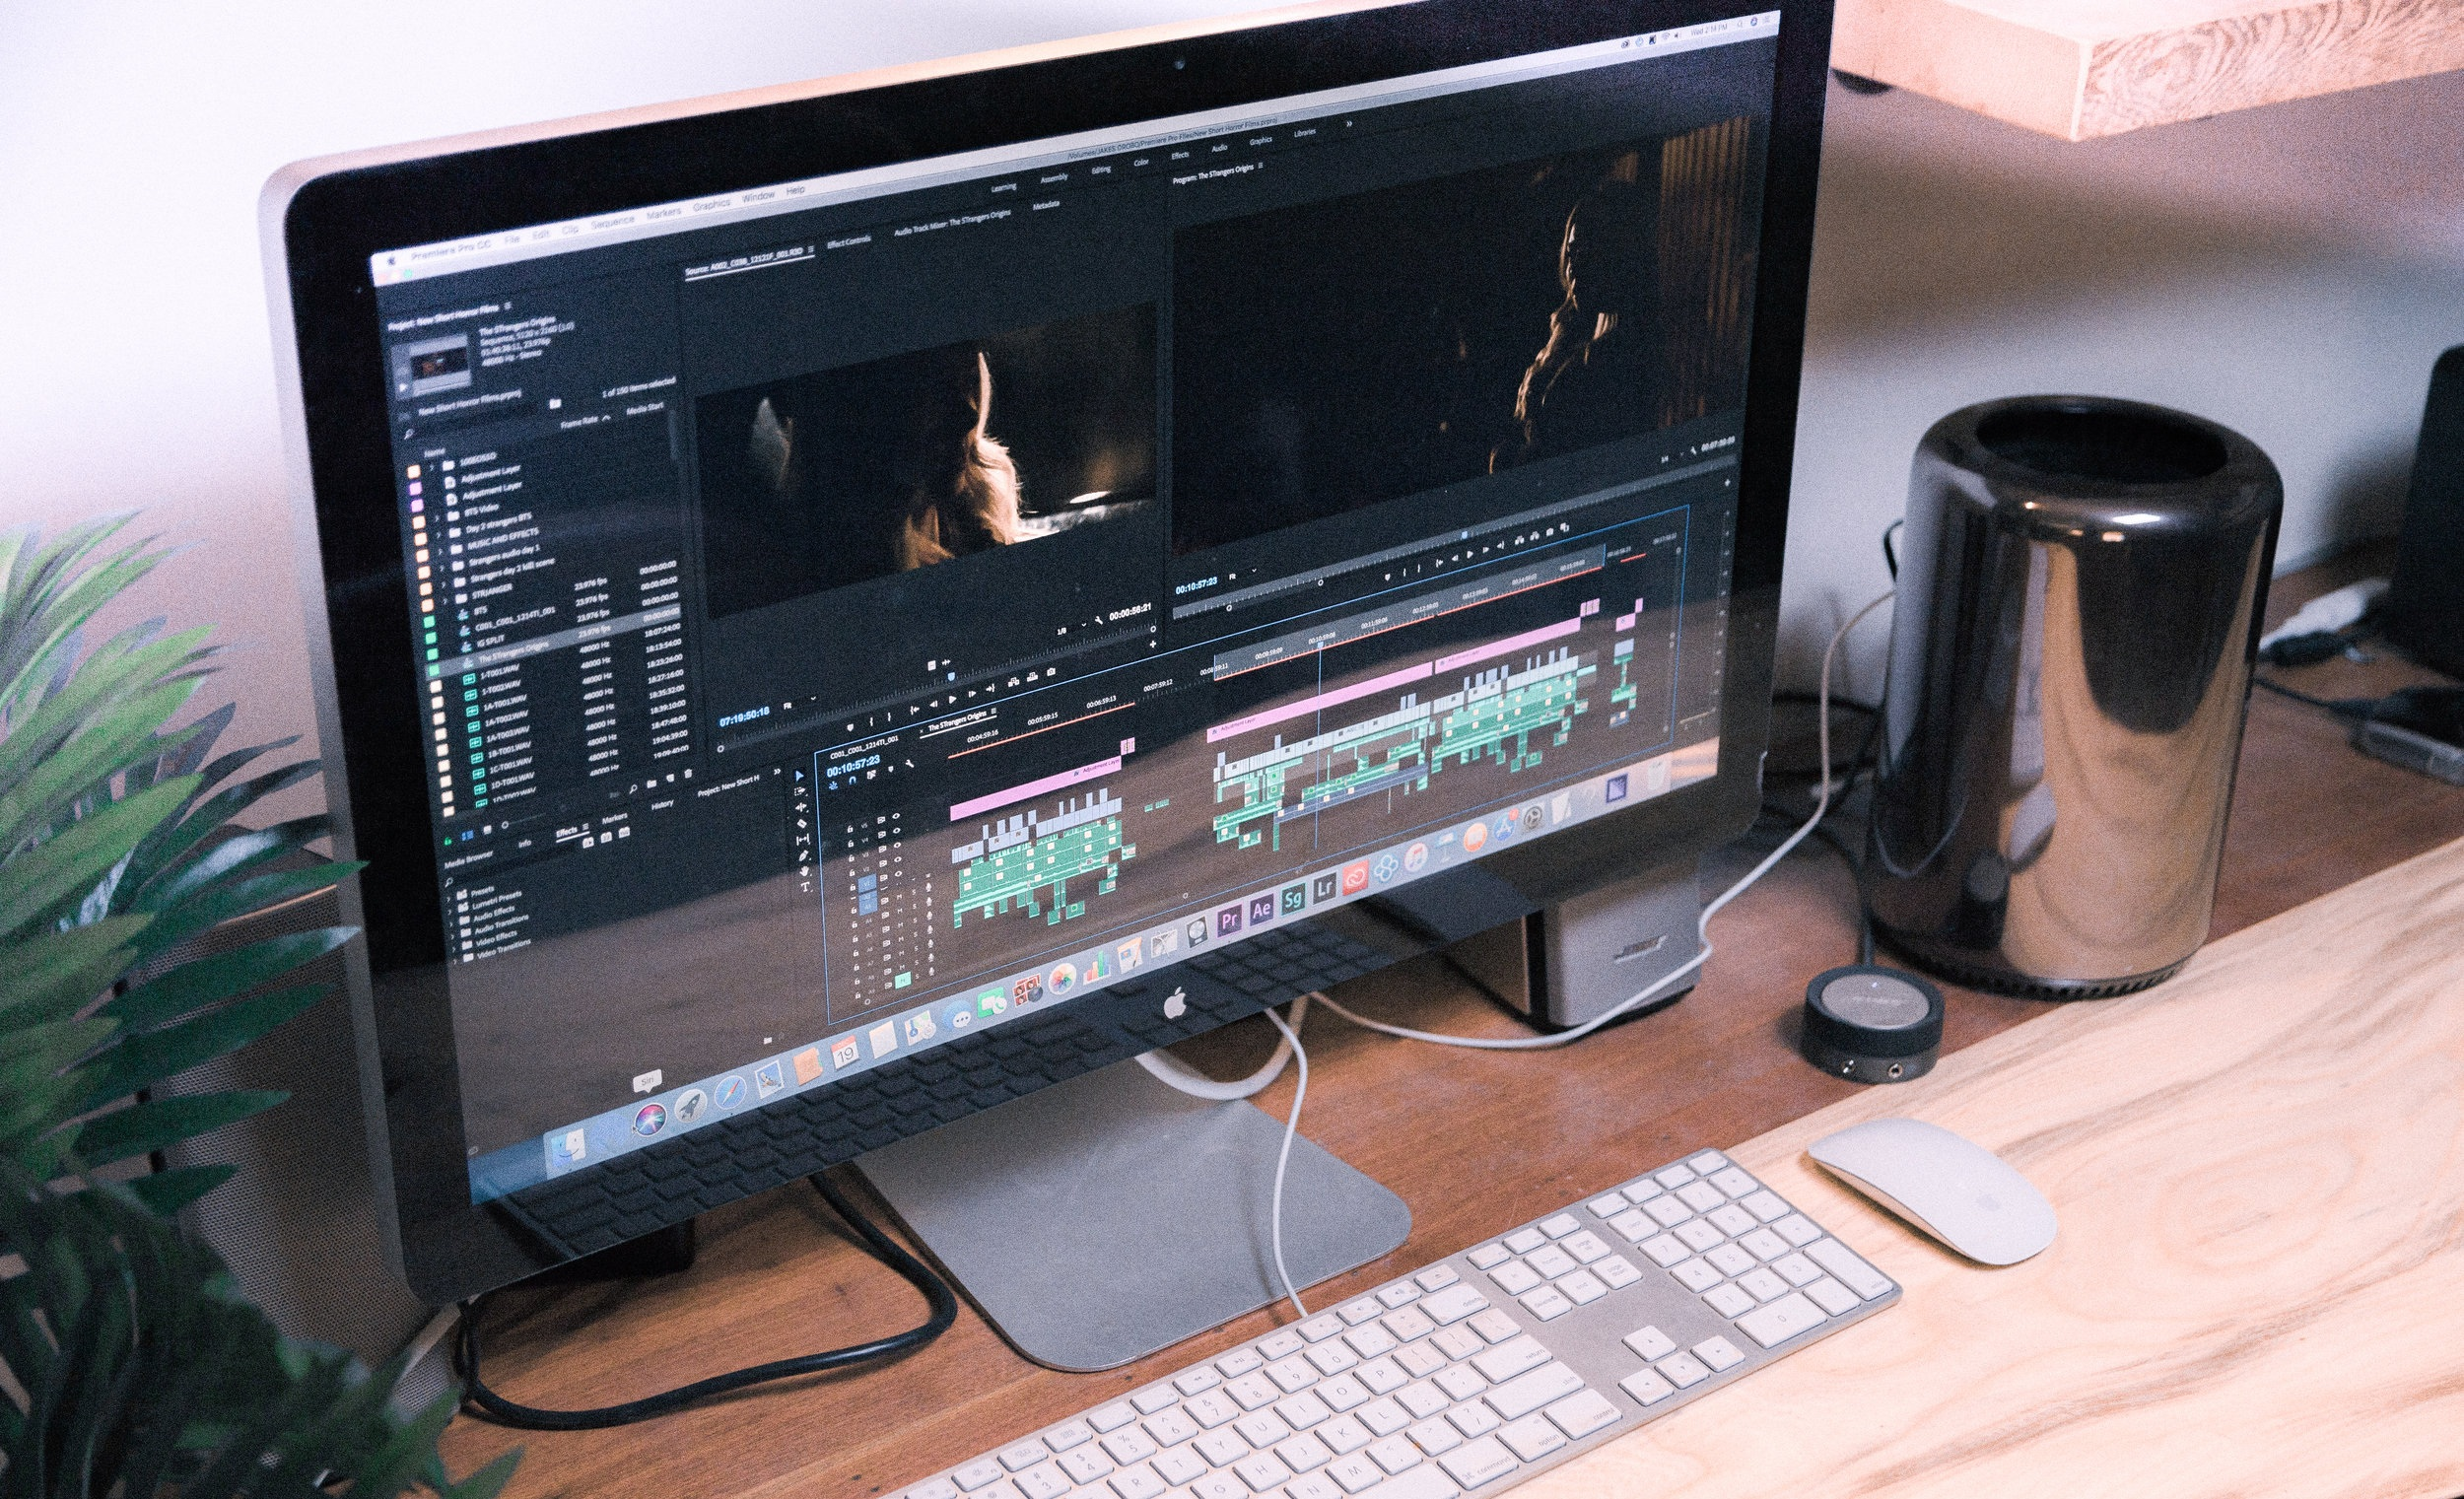 Editing Services - If you already have the content, and you just need a little help making it crisp, we offer Editing Services for as low as $20/hour. Contact us here and let's discuss your project.